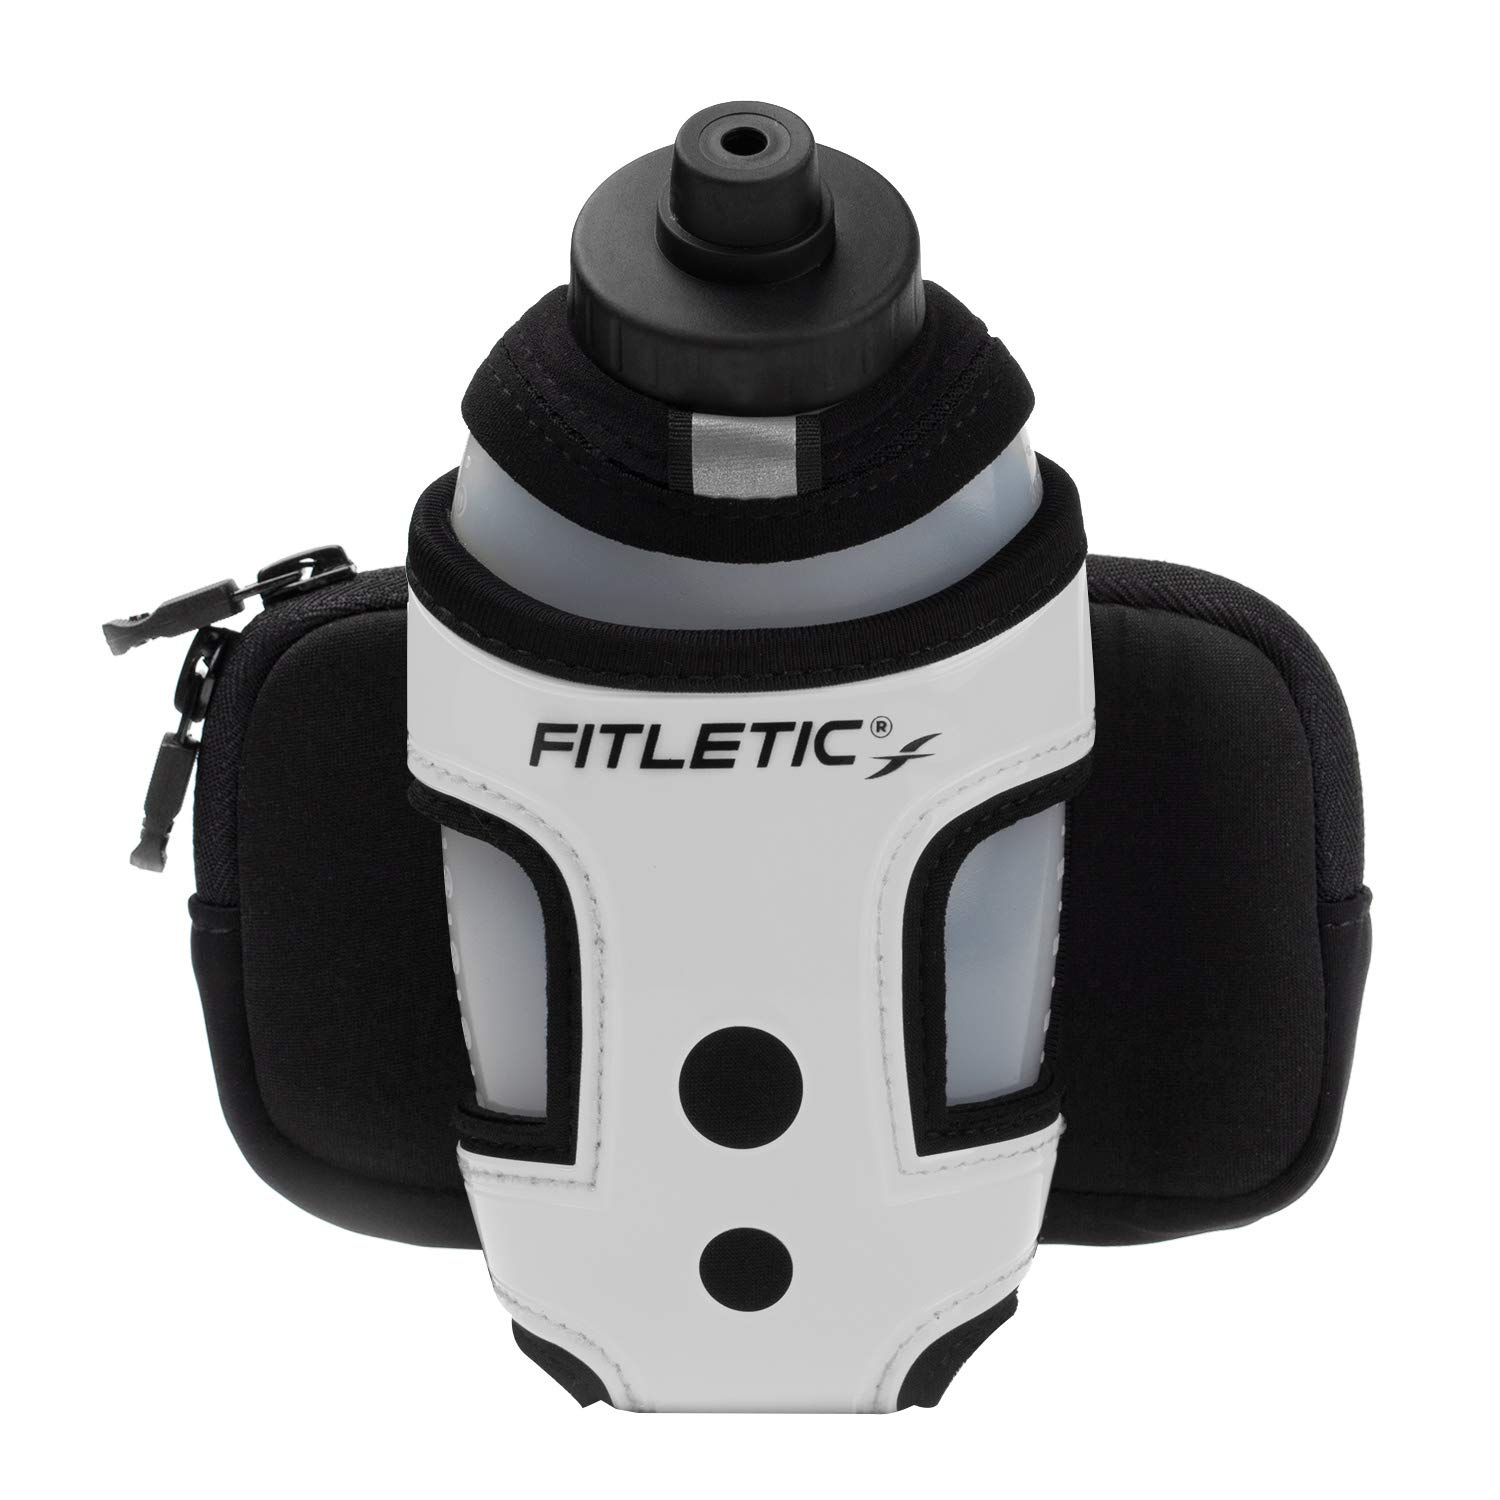 Fitletic Handheld Water Bottle /& Phone Holder HH-12P